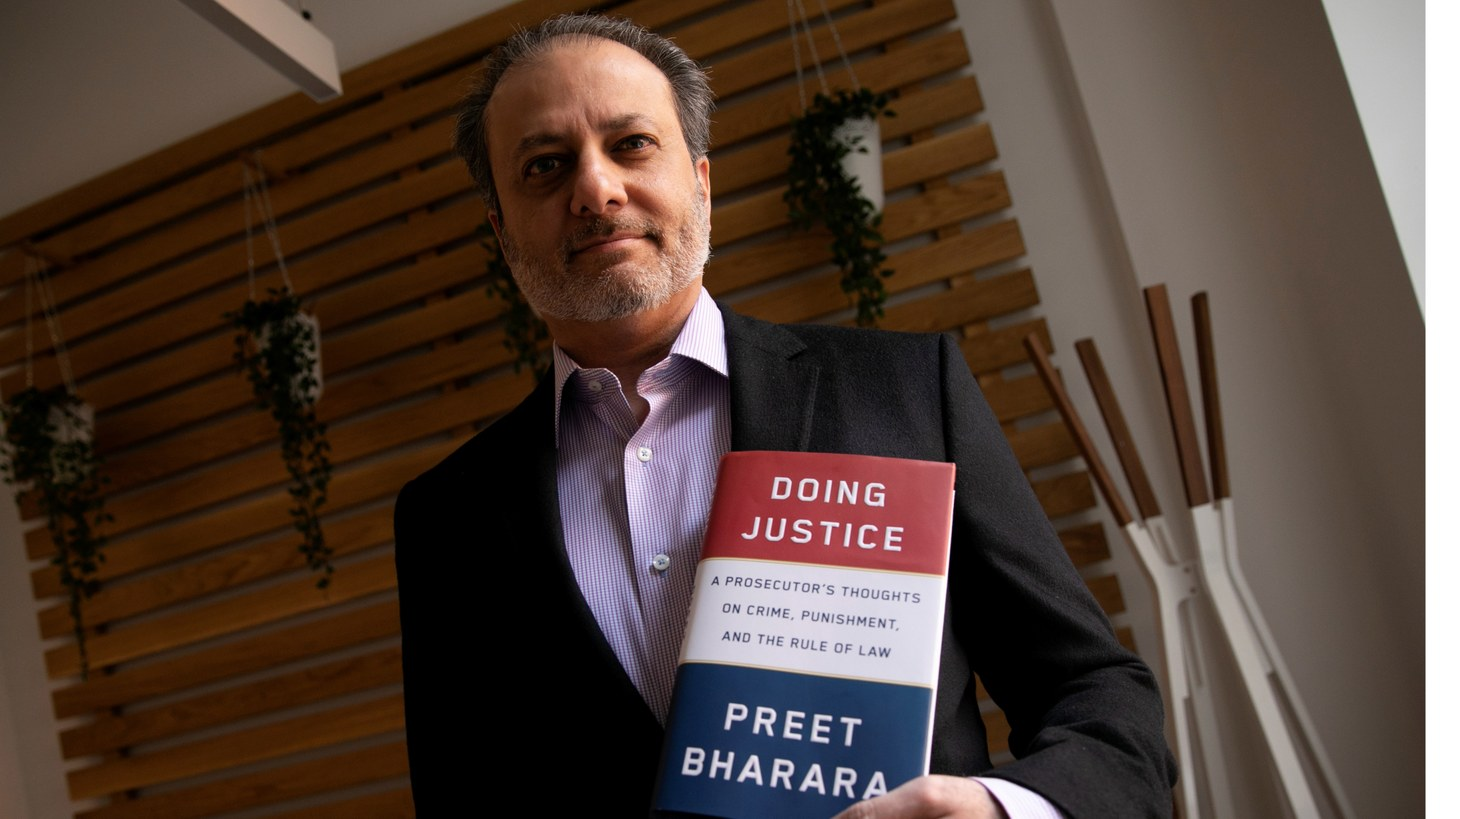 """Former U.S. Attorney for the Southern District of New York Preet Bharara poses for a photograph during an interview with Reuters ahead of the release of his book """"Doing Justice: A Prosecutors Thoughts on Crime, Punishment and the Rule of Law"""" in New York City, New York, U.S. March 13, 2019. Picture taken March 13, 2019."""